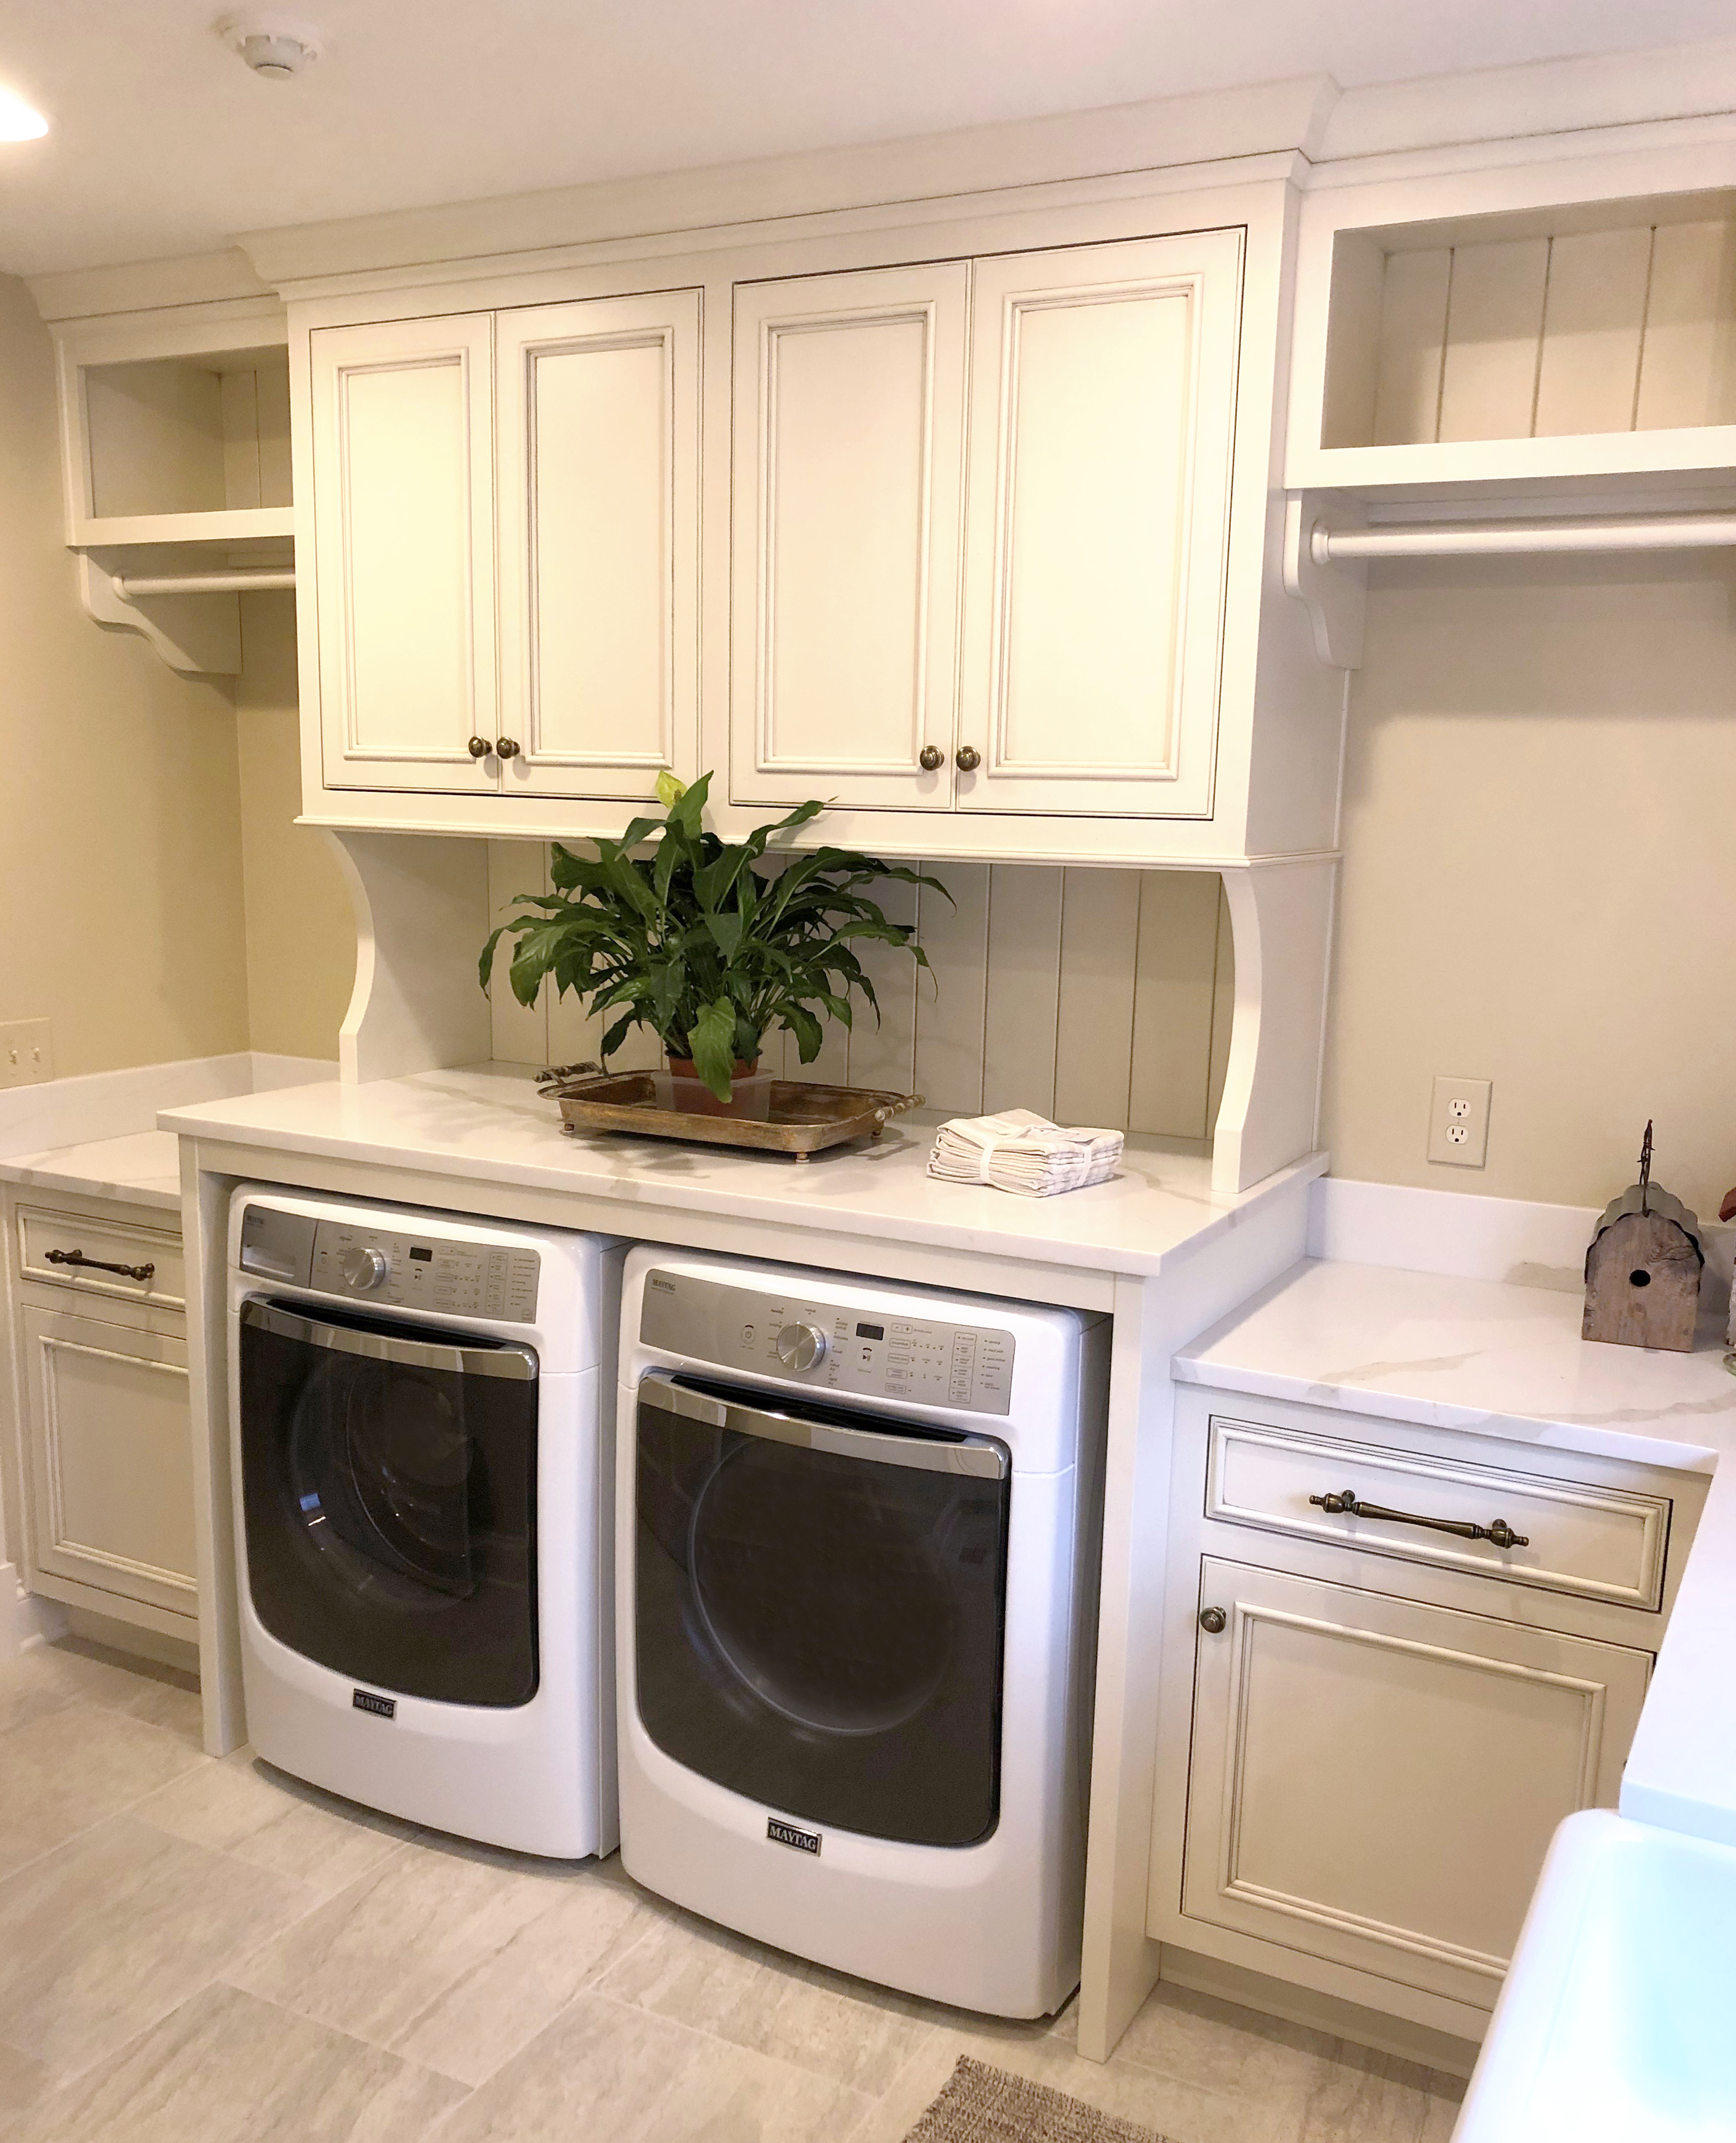 Laundry Cabinets, Evansville IN on Laundry Cabinets  id=43687